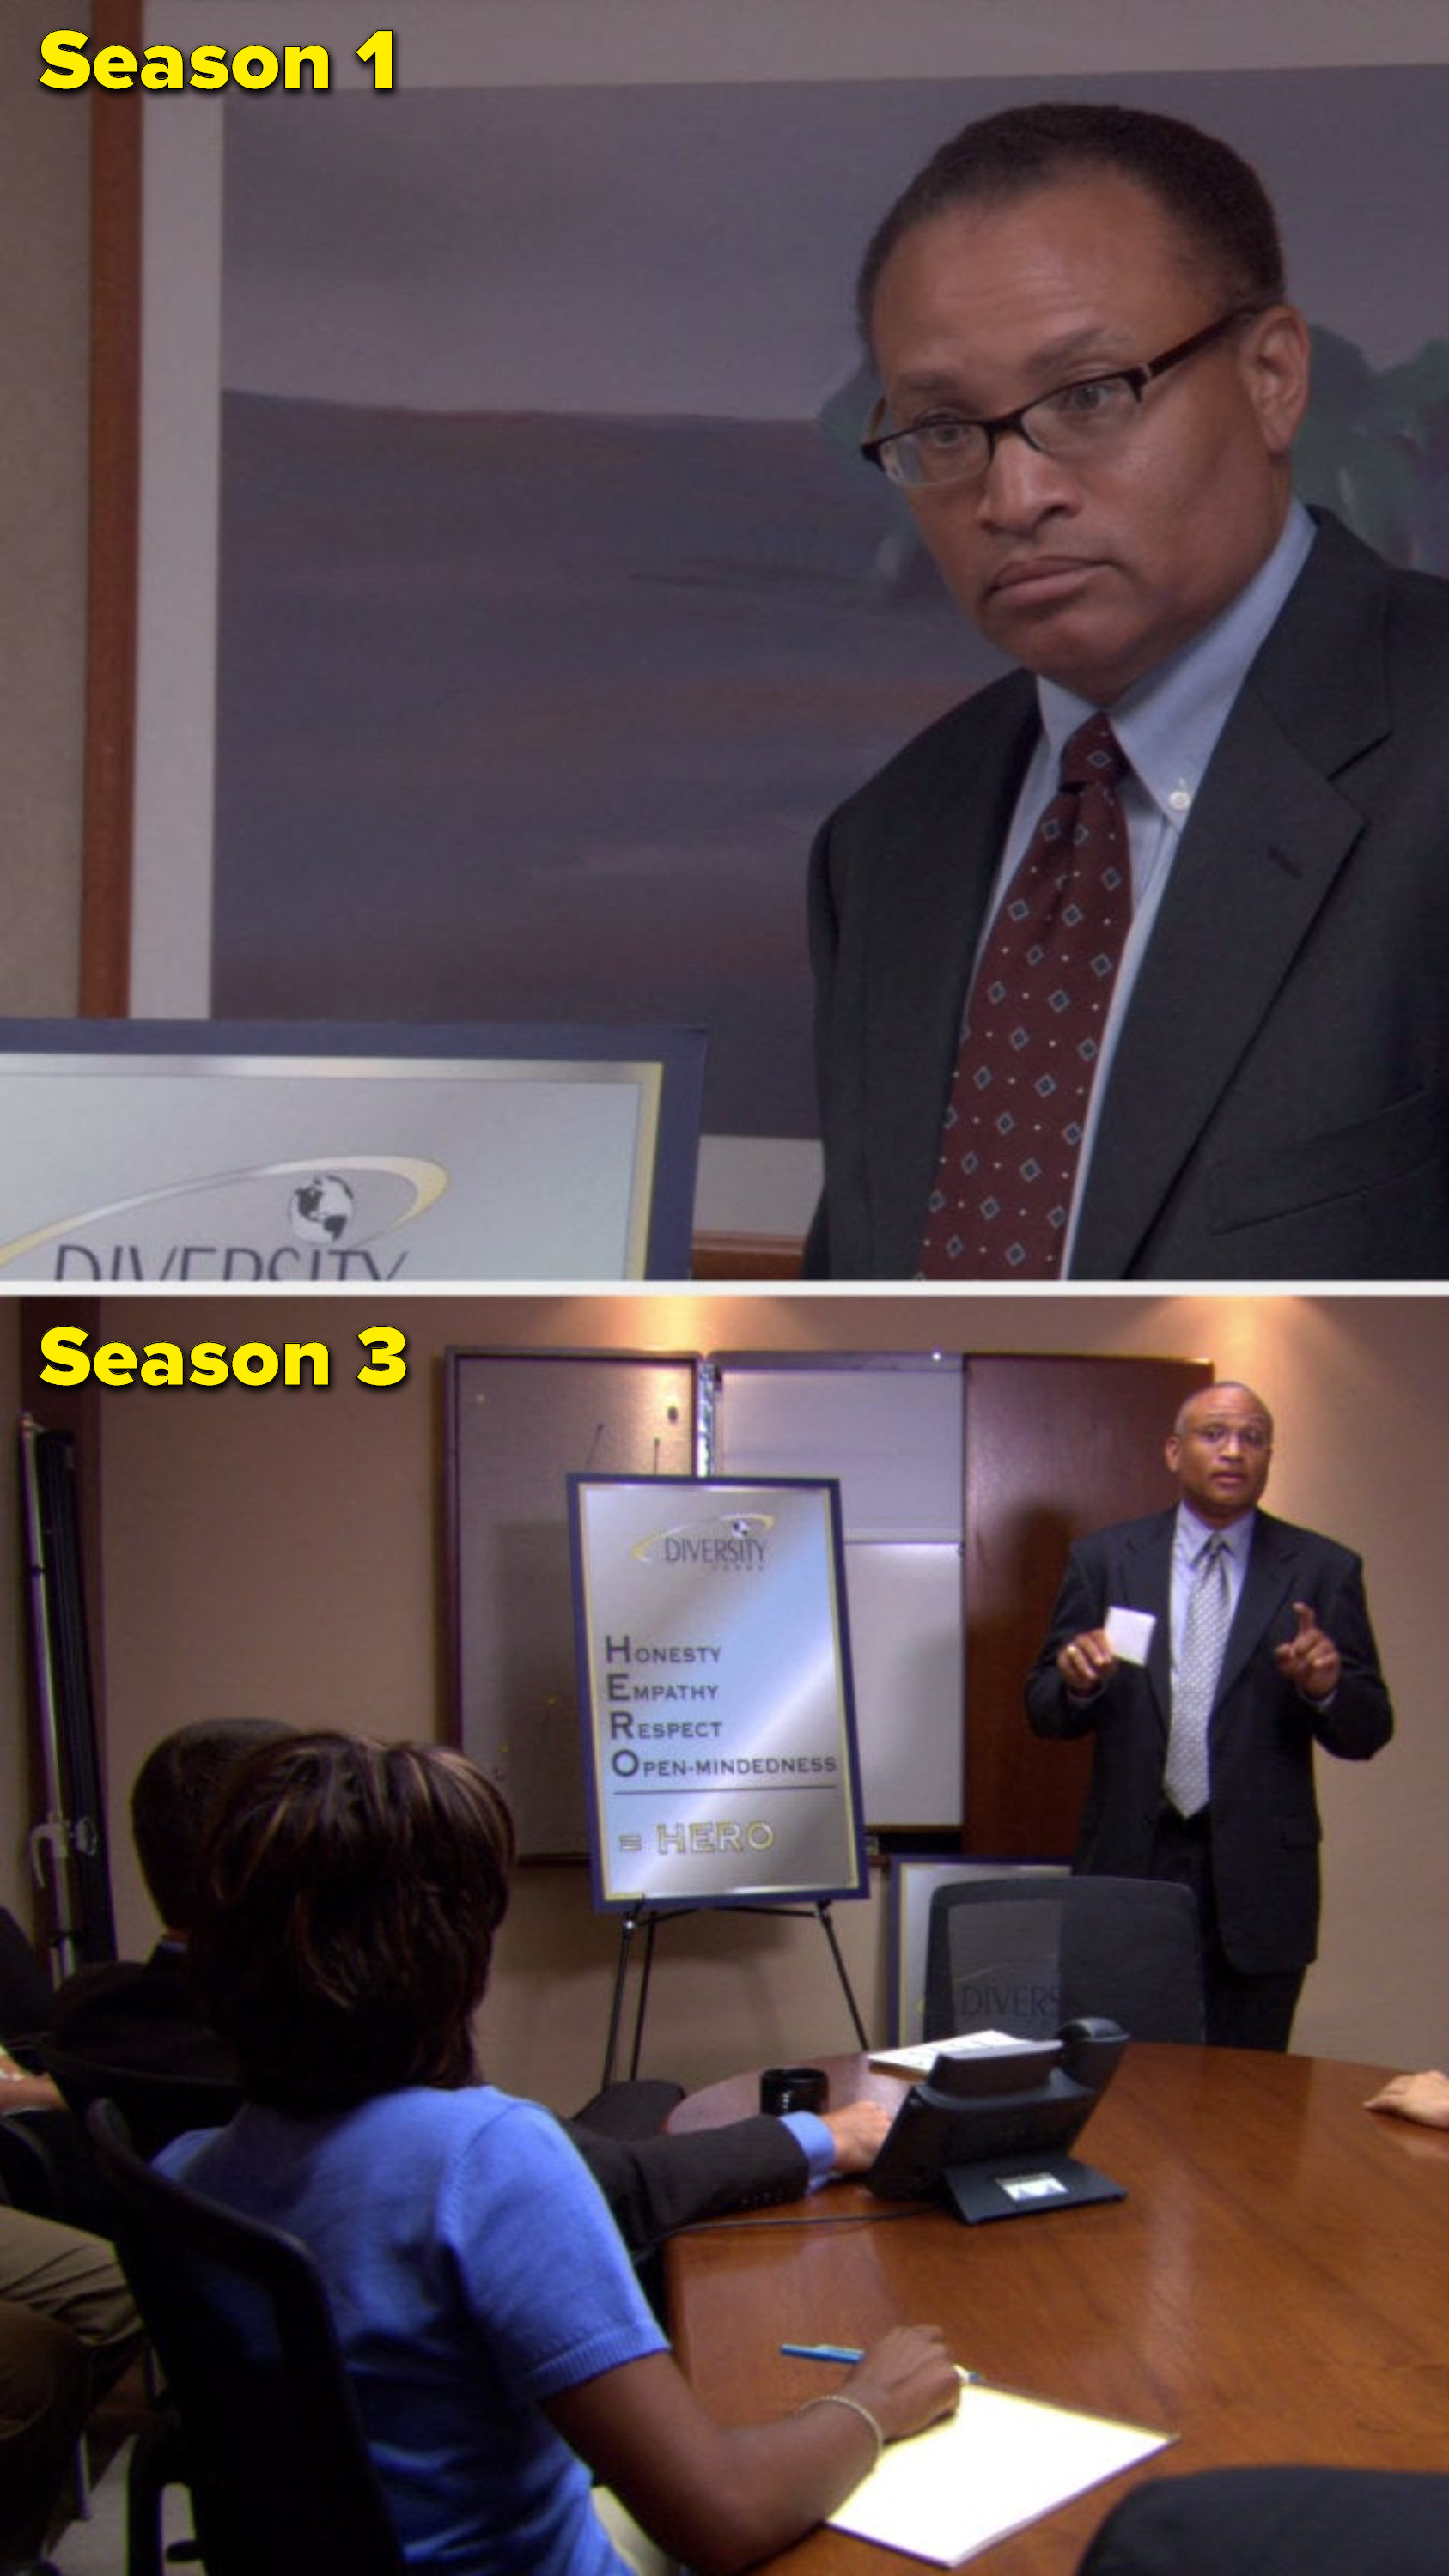 The same person is in Season 1 and Season 3